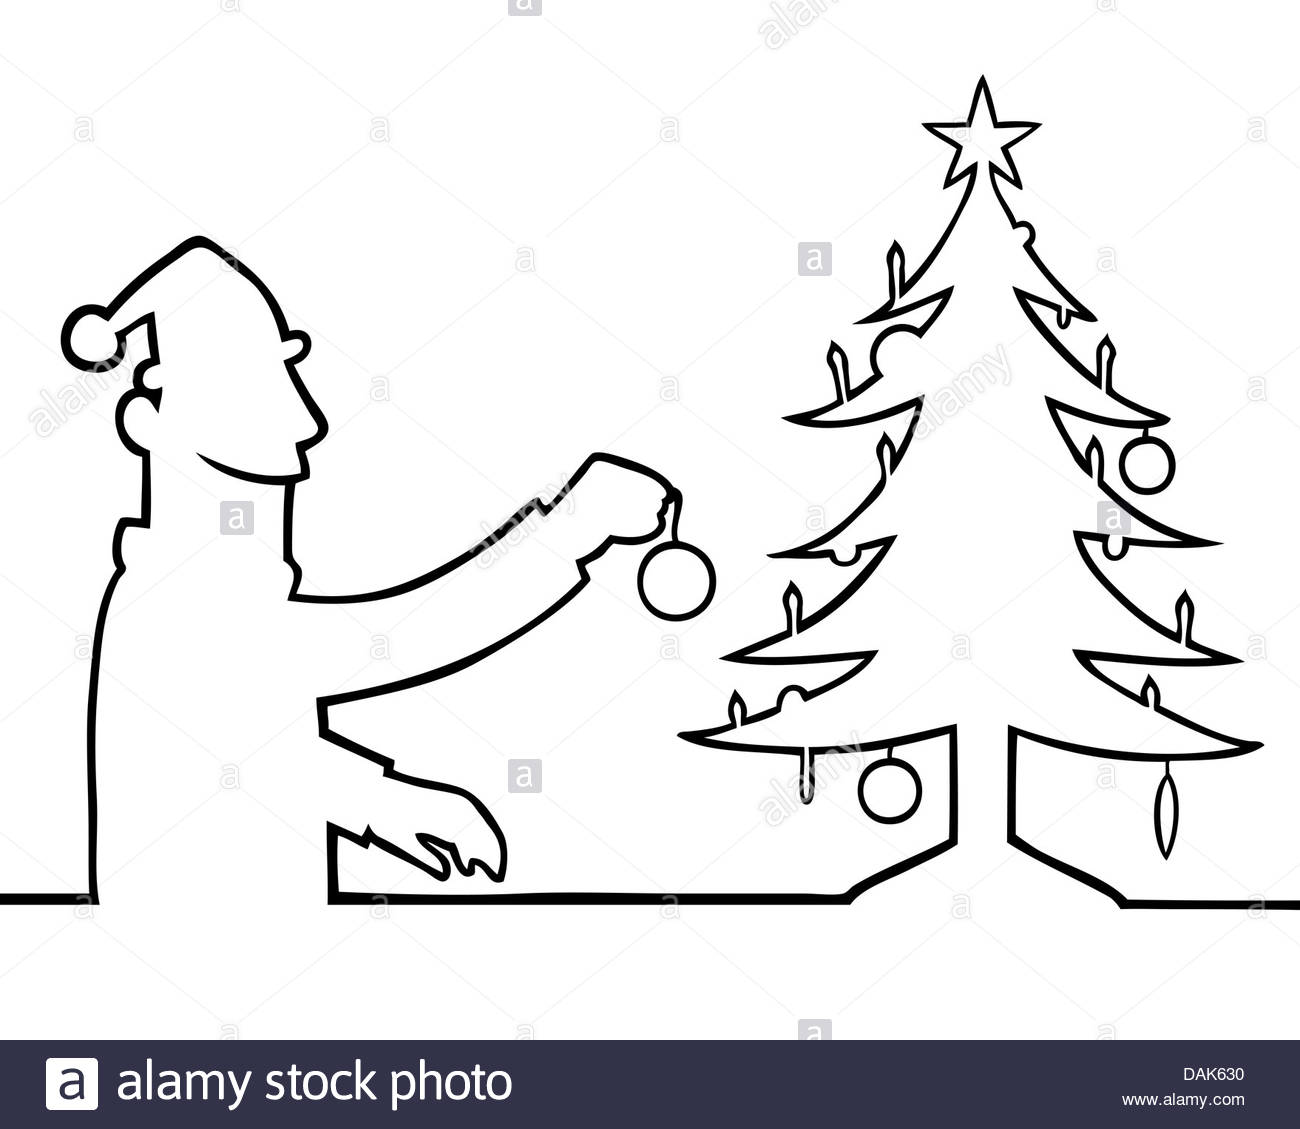 1300x1129 Black Line Art Illustration Of A Man Decorating A Christmas Tree